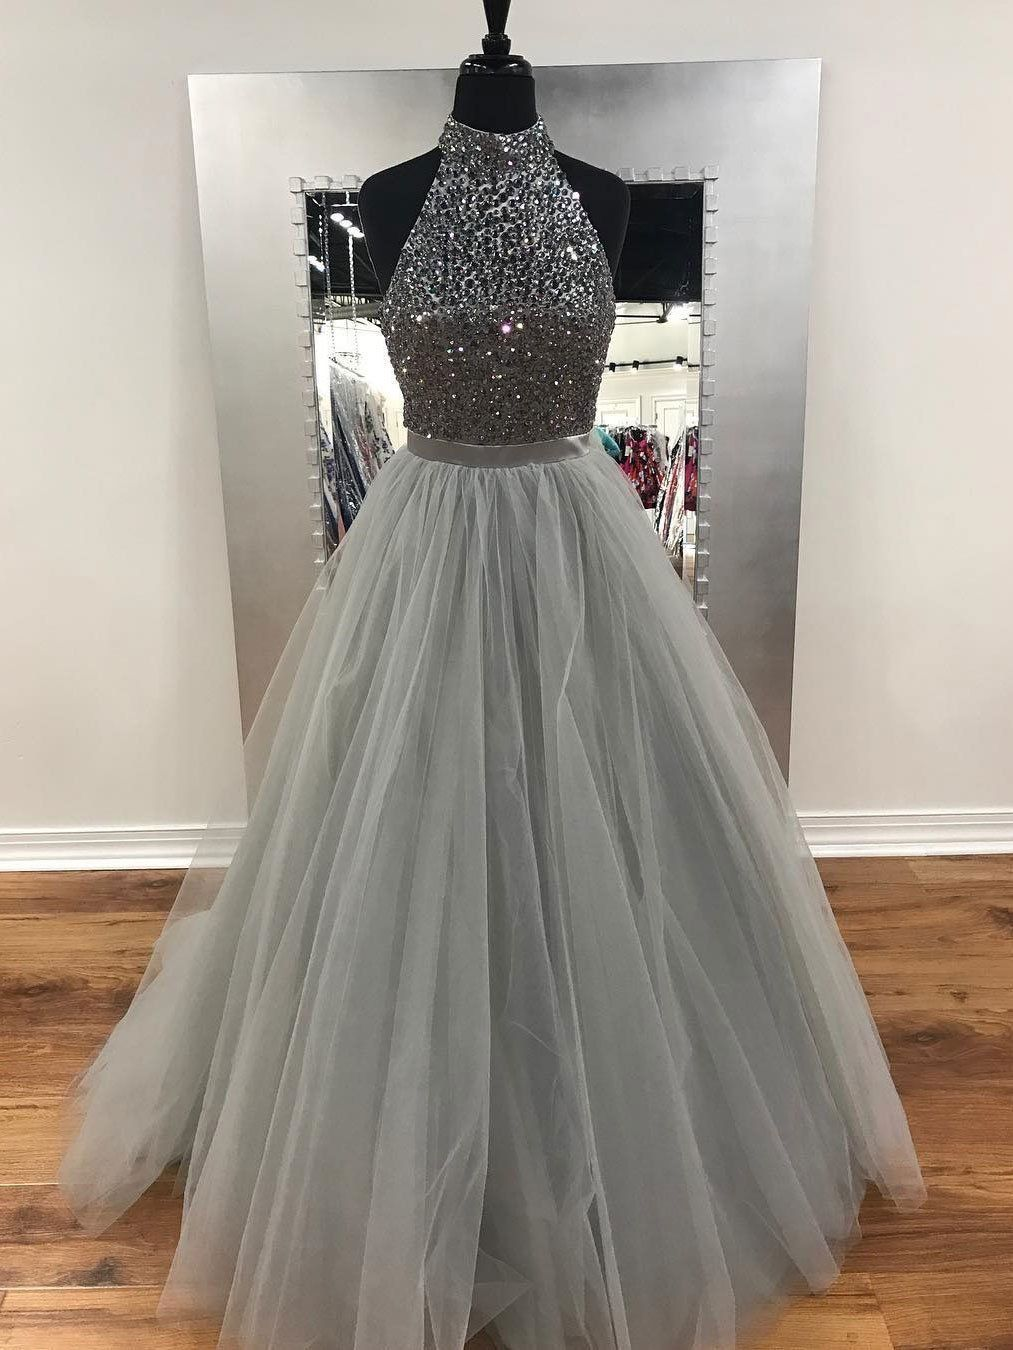 A Line Gray Beaded Fashion Evening Prom Dresses Popular Sweet 16 Party Prom Dresses Custom Long Prom Dresses Cheap Formal Prom Dresses 17147 In 2021 Silver Prom Dress Grey Prom Dress Prom Party Dresses [ 1350 x 1013 Pixel ]